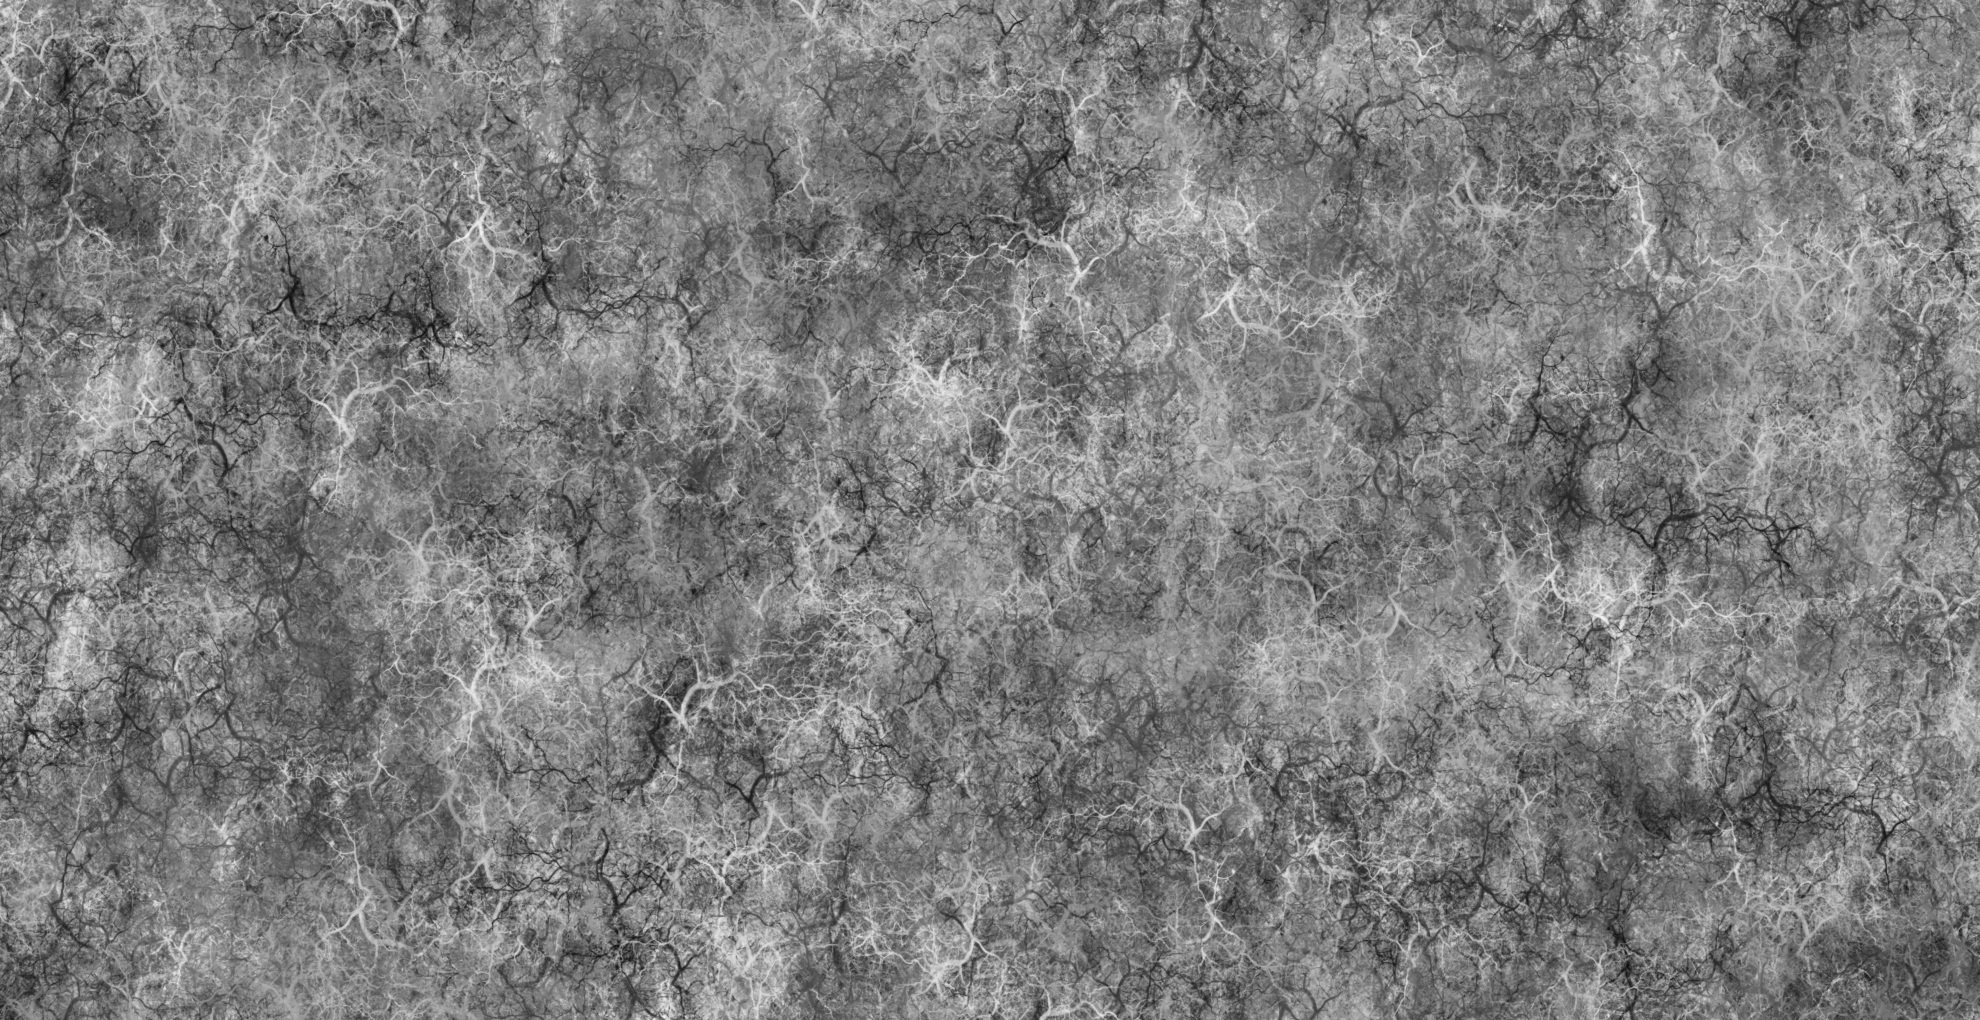 Dark Grey Marble Texture Image In Backgrounds And Textures Category At Pixy Org Suburban Indy Shows